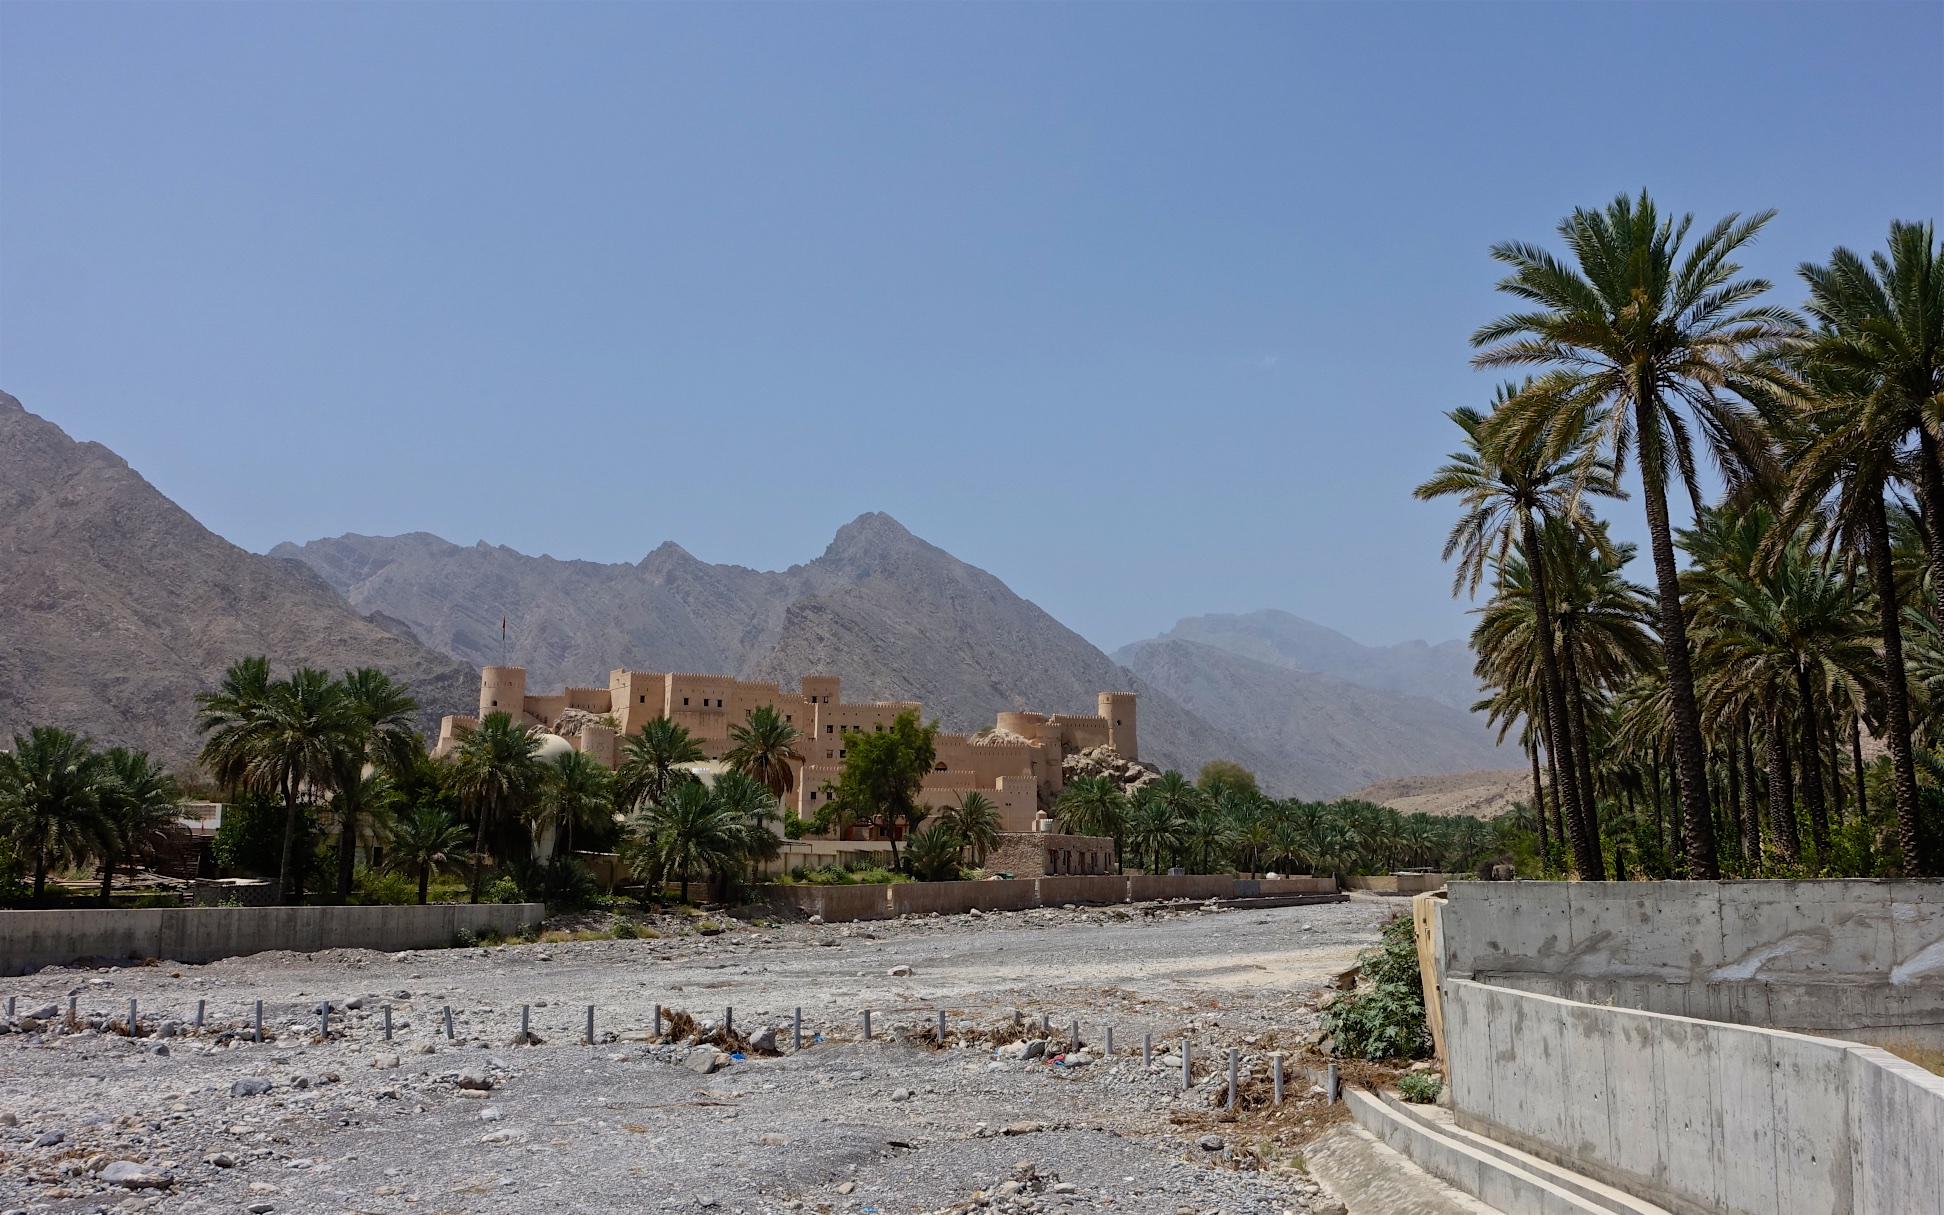 Nakhal Fort overlooking vast palm orchards dates back to the pre-Islamic era - located at the edge of the Jabal Akhdar mountains ini the northwest of Oman.